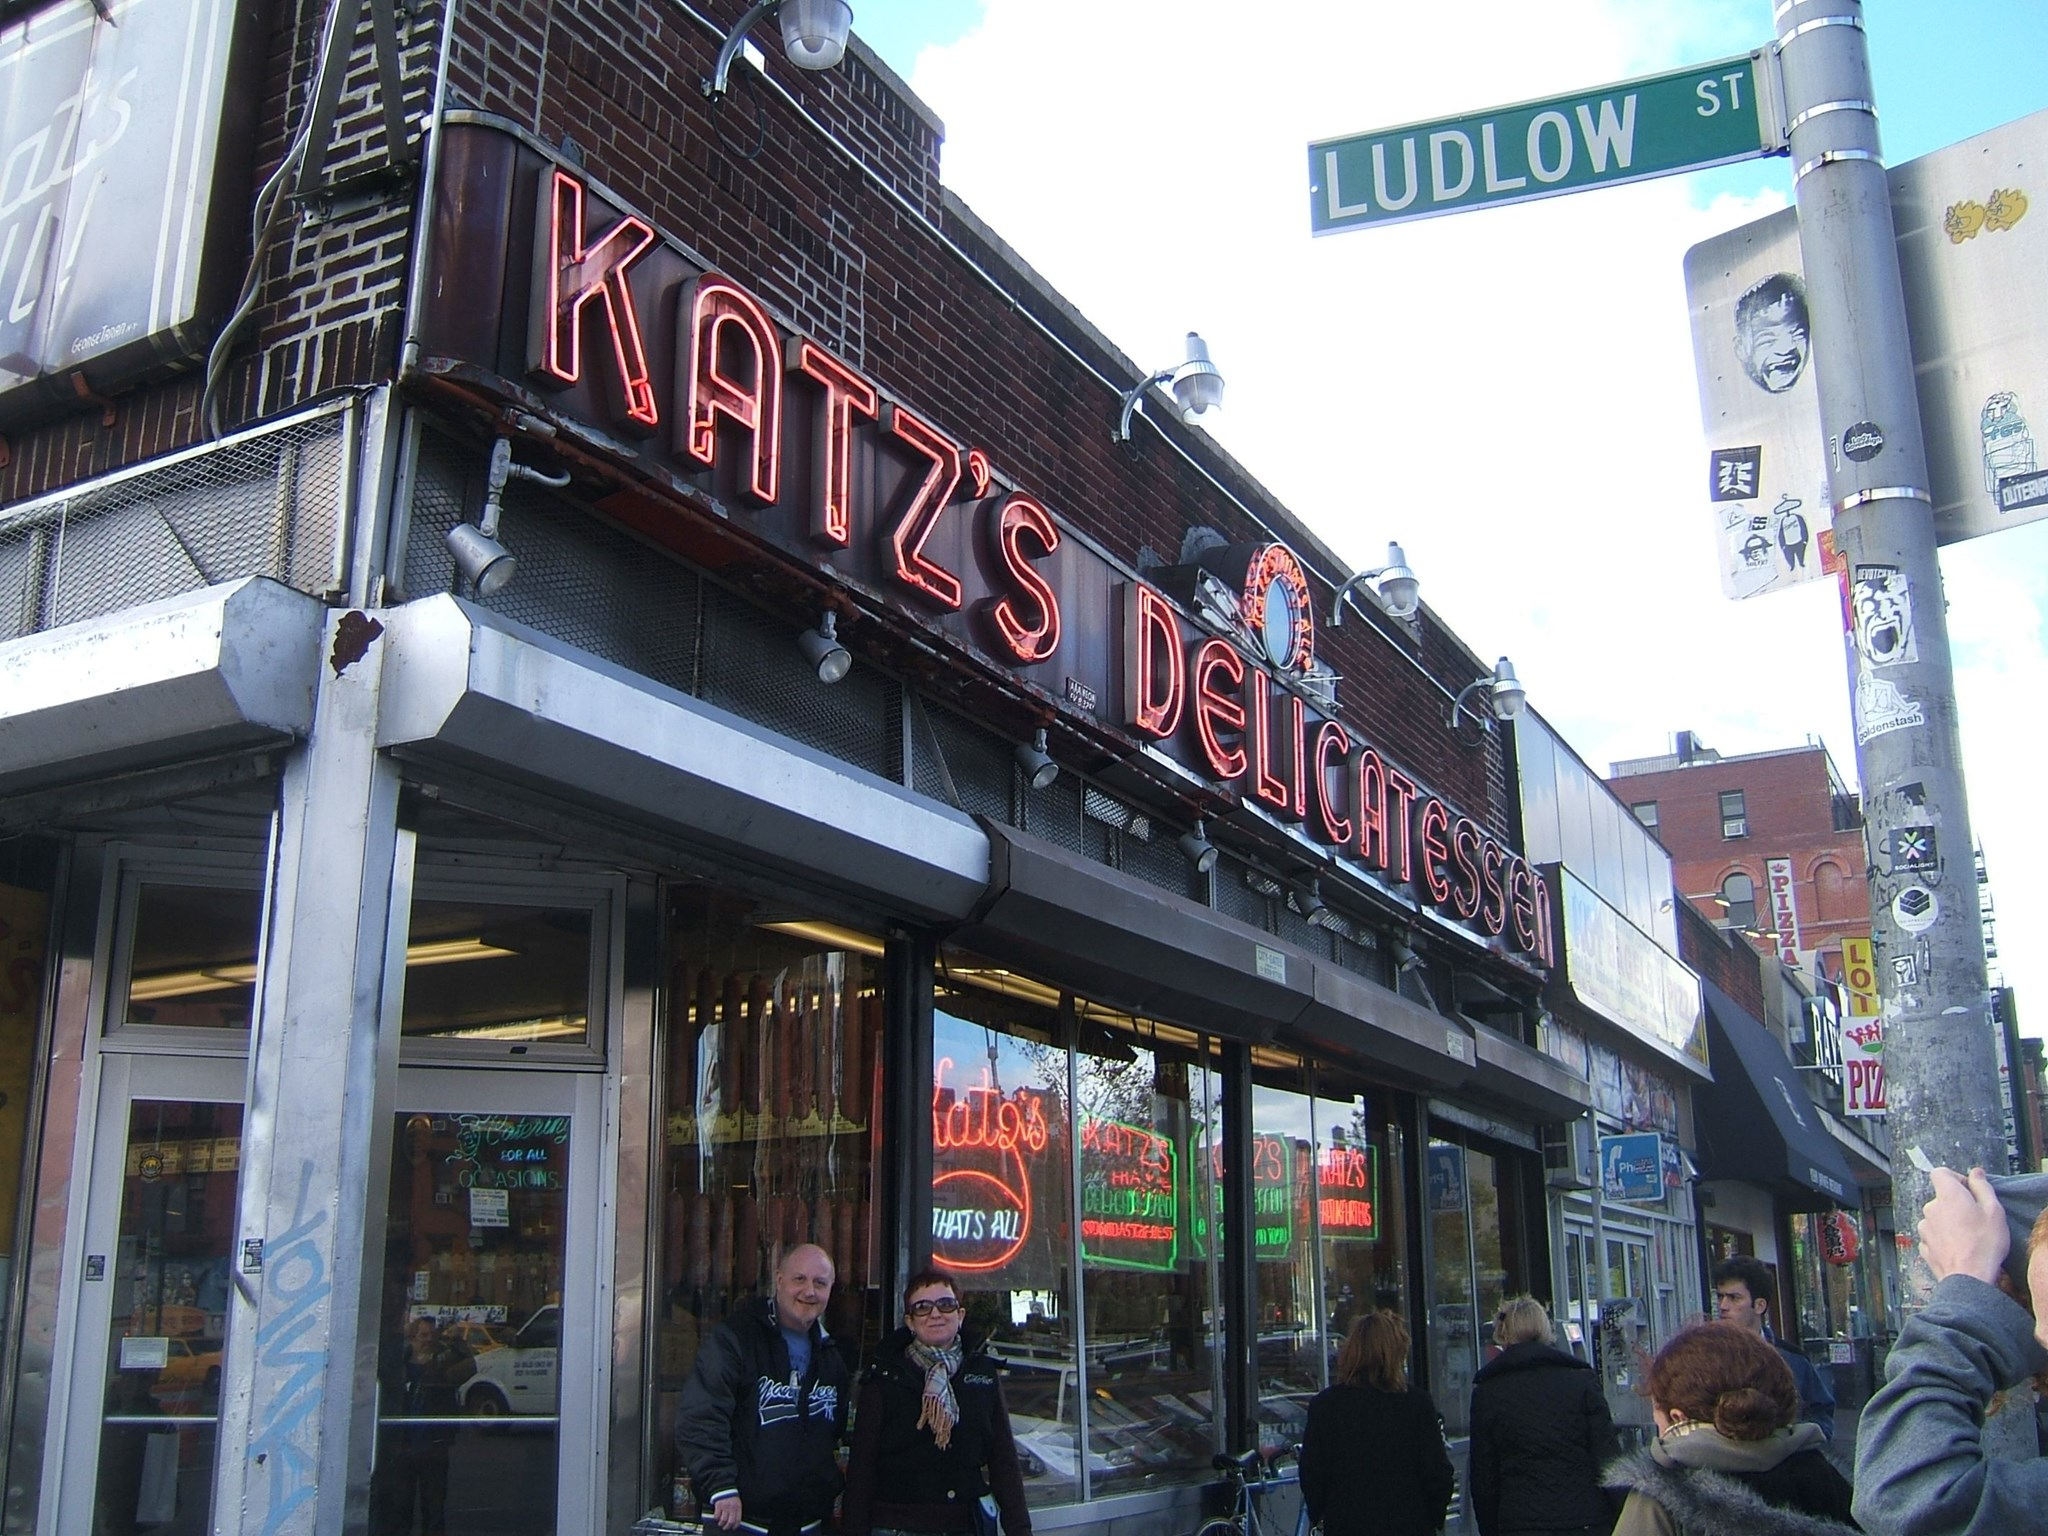 Katz's Deli   (Where Harry Met Sally!!)   October 2006